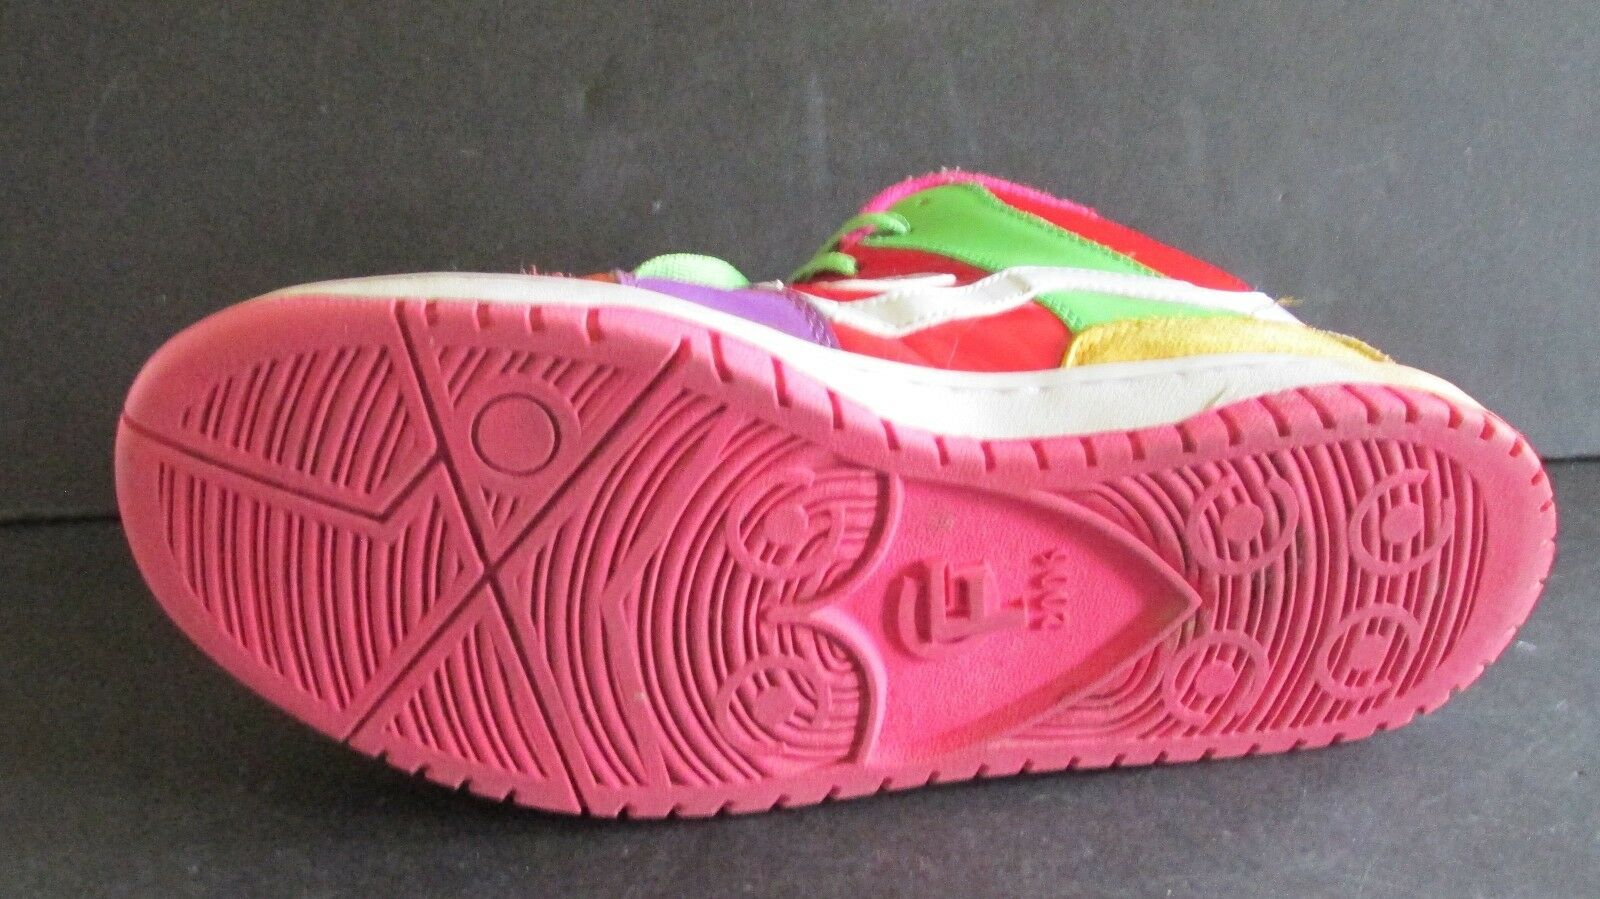 G Force Bang Mid Sz 10 Men's BRIGHT COLORS Patent Leather/Leather  Skate Board